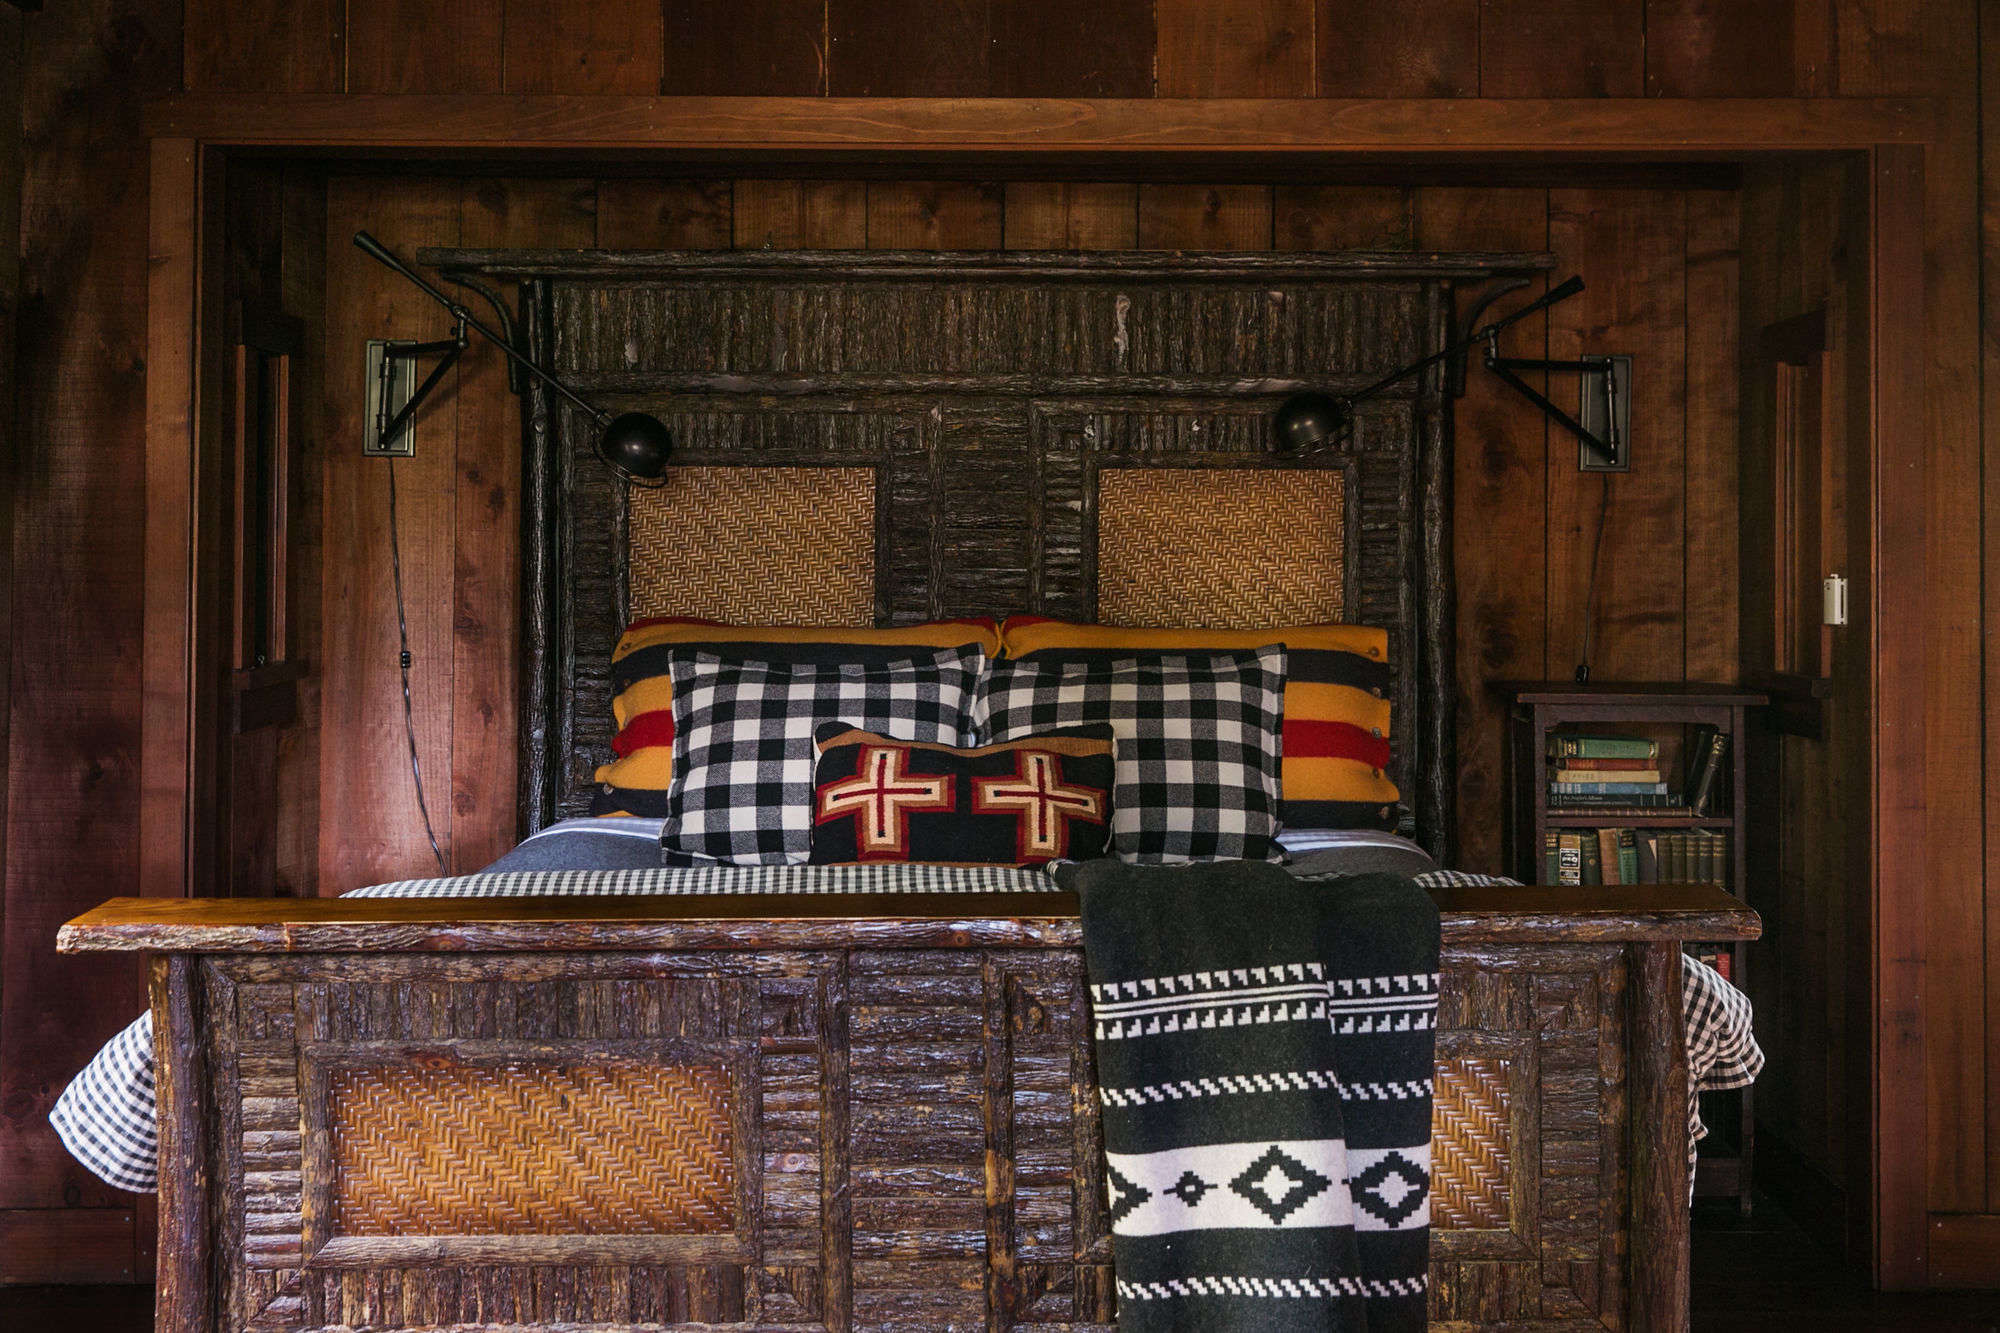 layers of flannel make up the large bed. 23